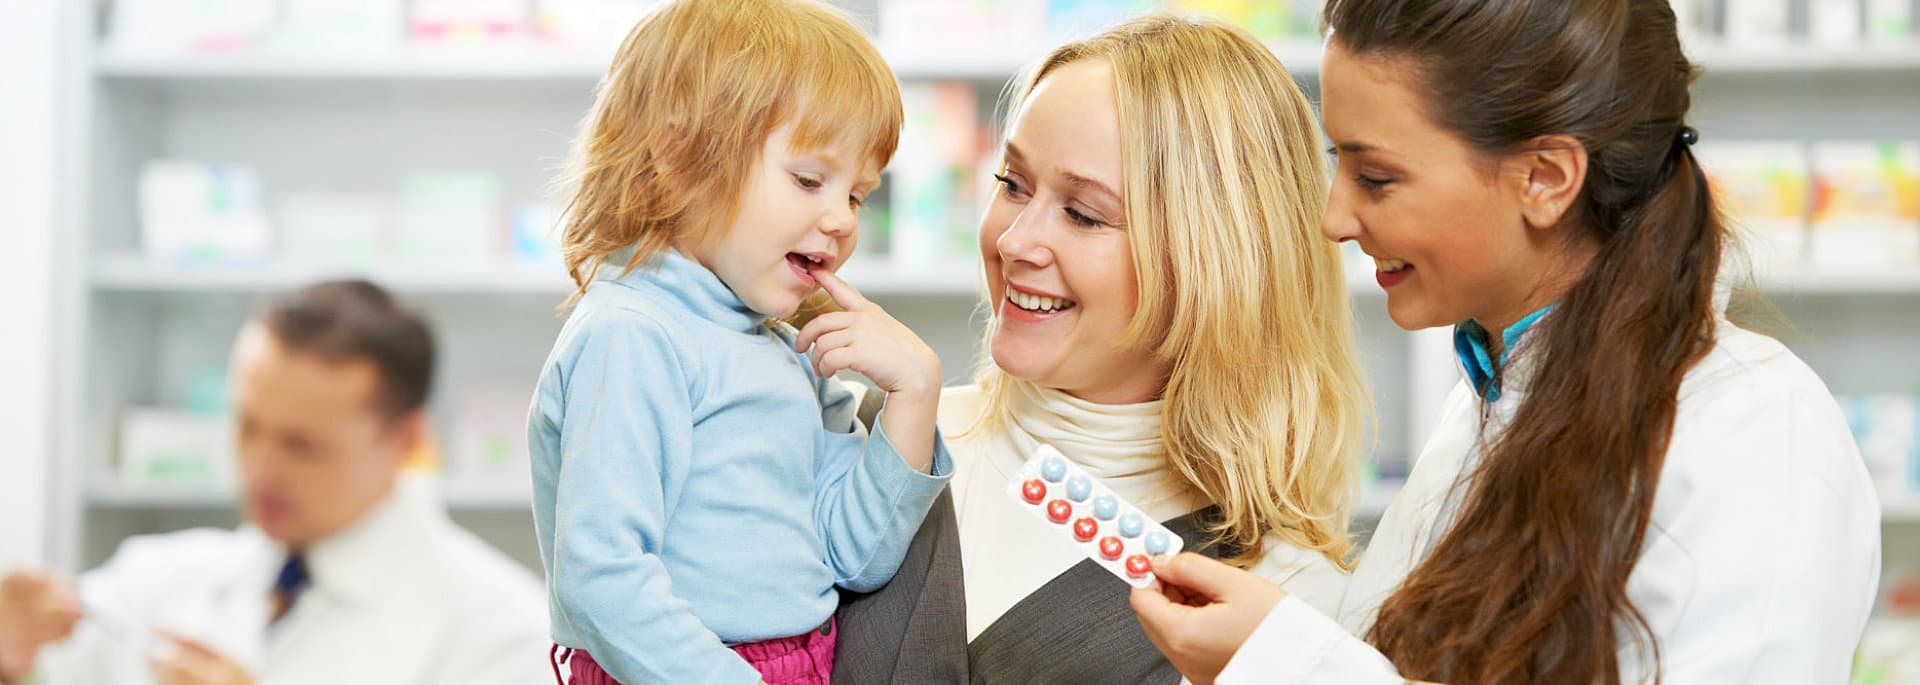 the woman is carrying her child while the pharmacist is handing the tablet